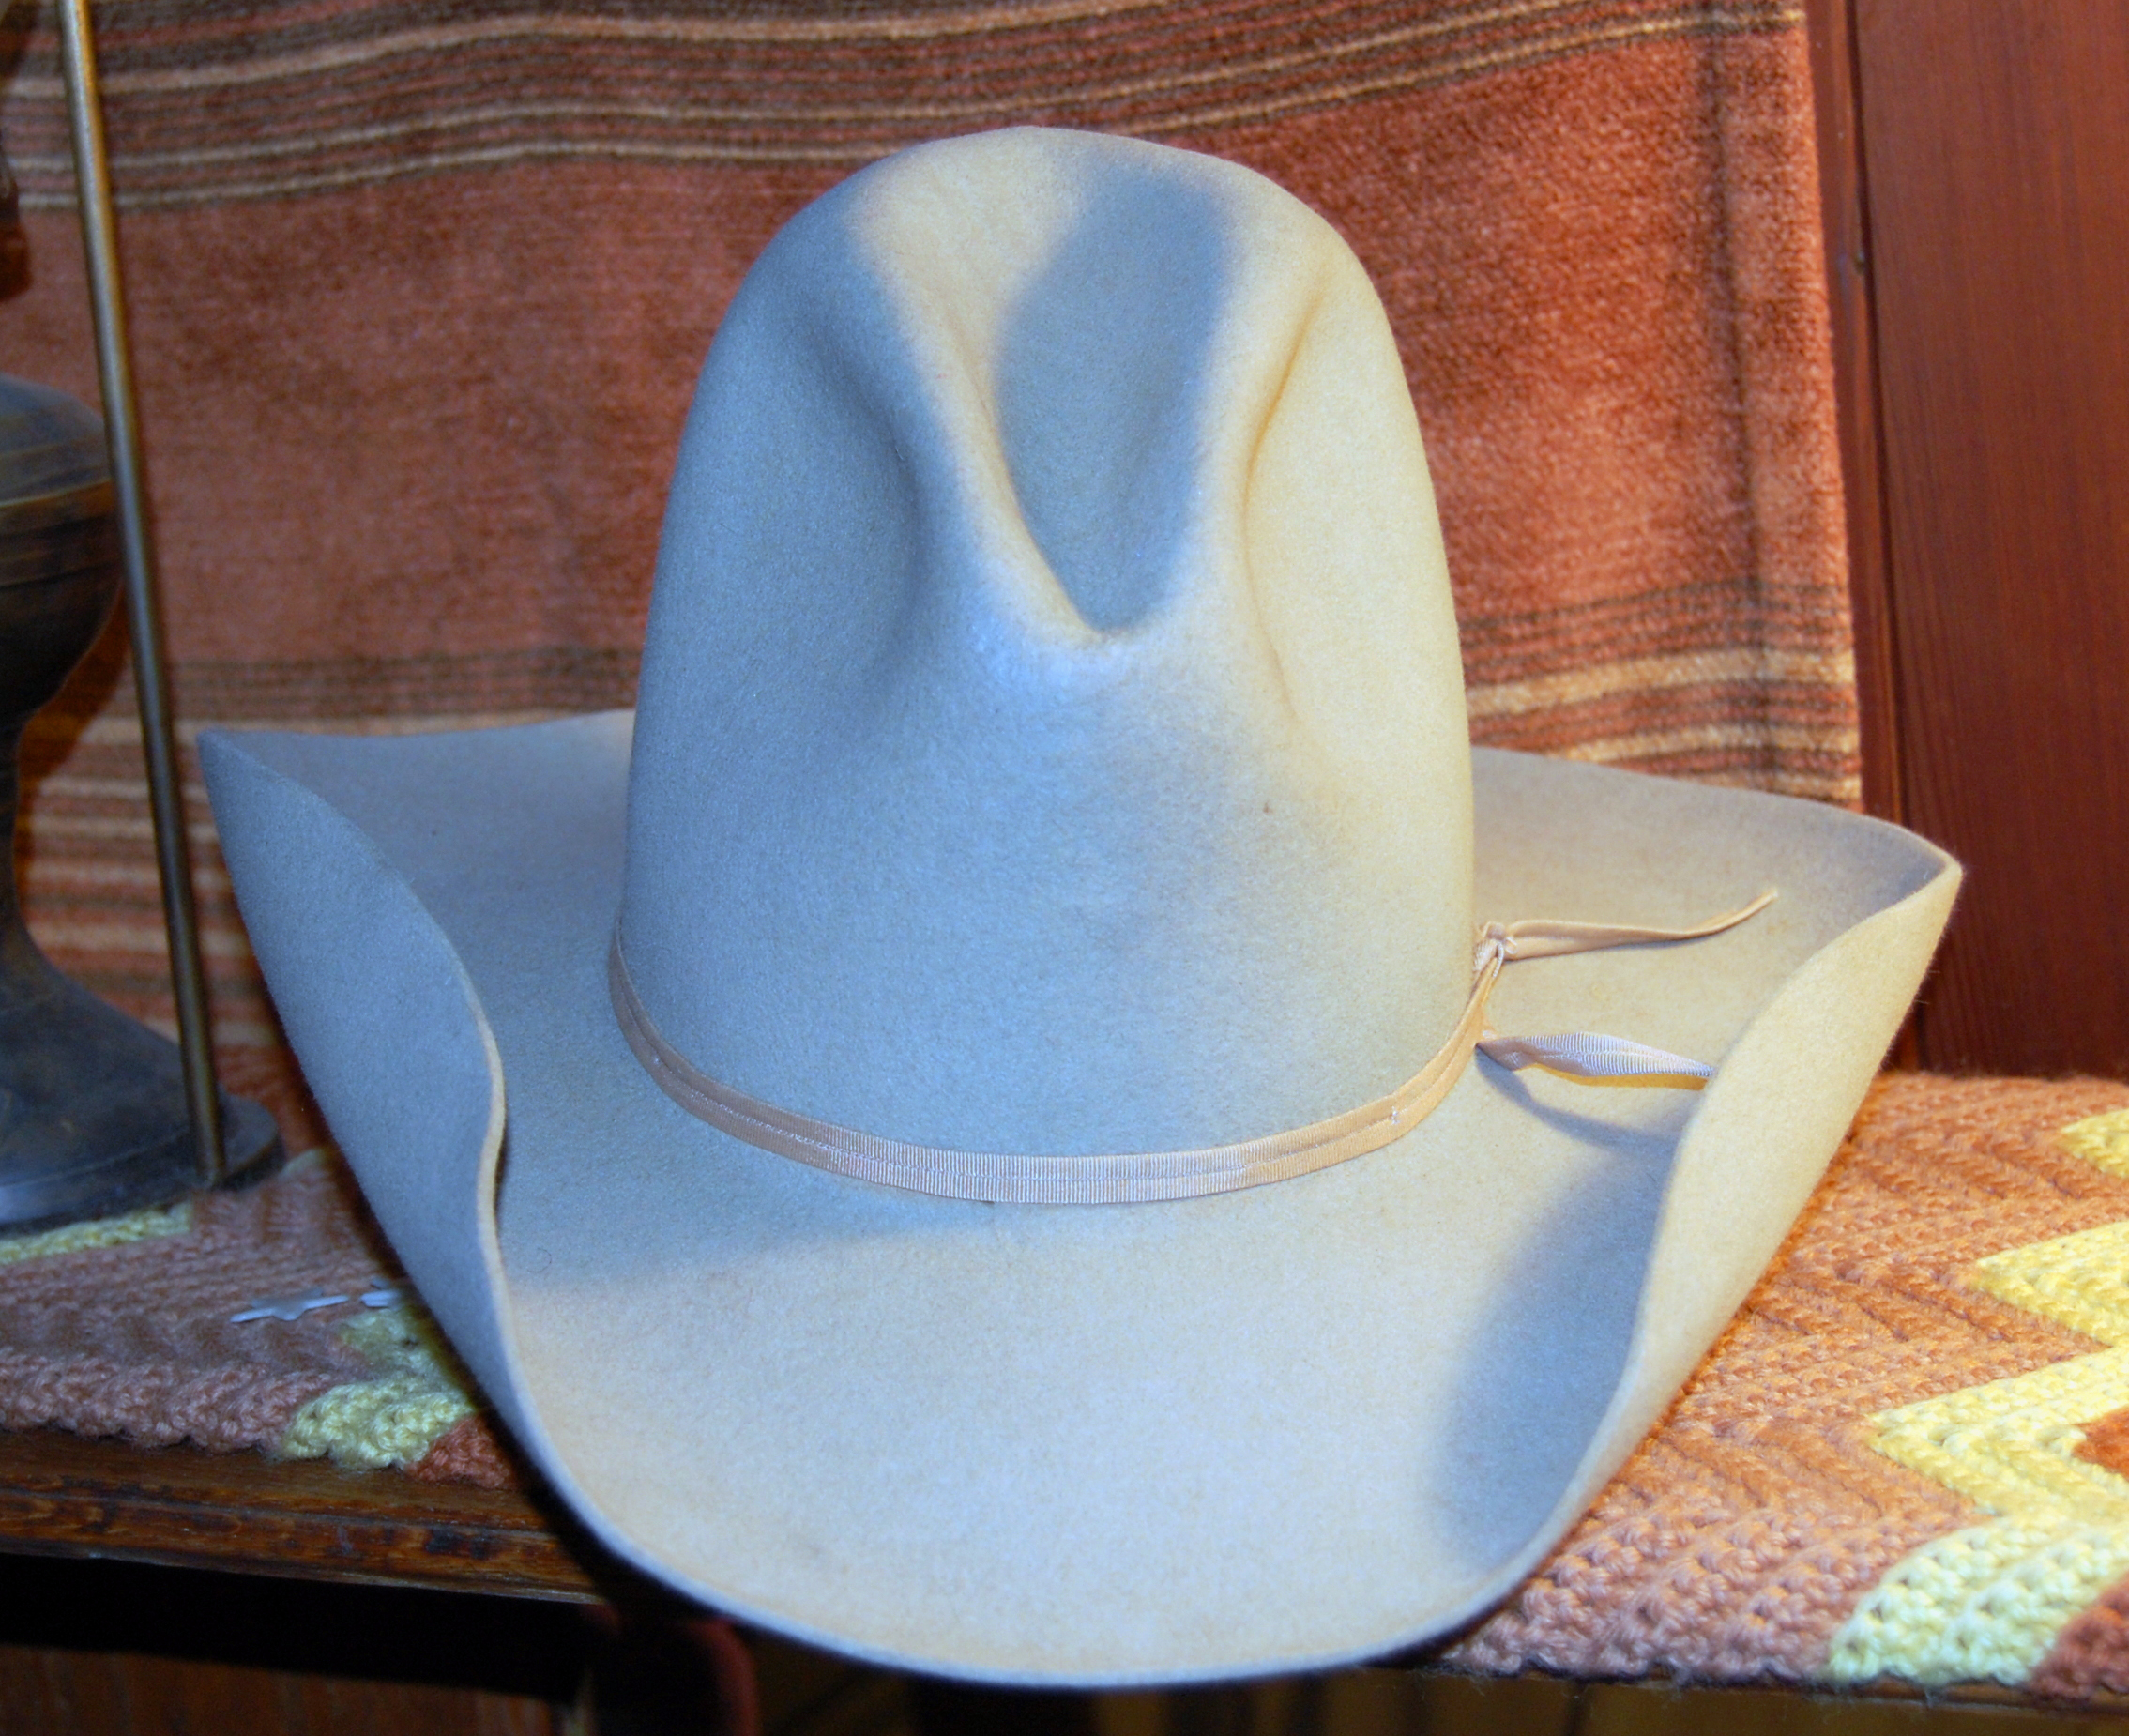 File Stetson cowboy hat silver belly 2 hand rolled.JPG - Wikimedia ... 60b195034d5